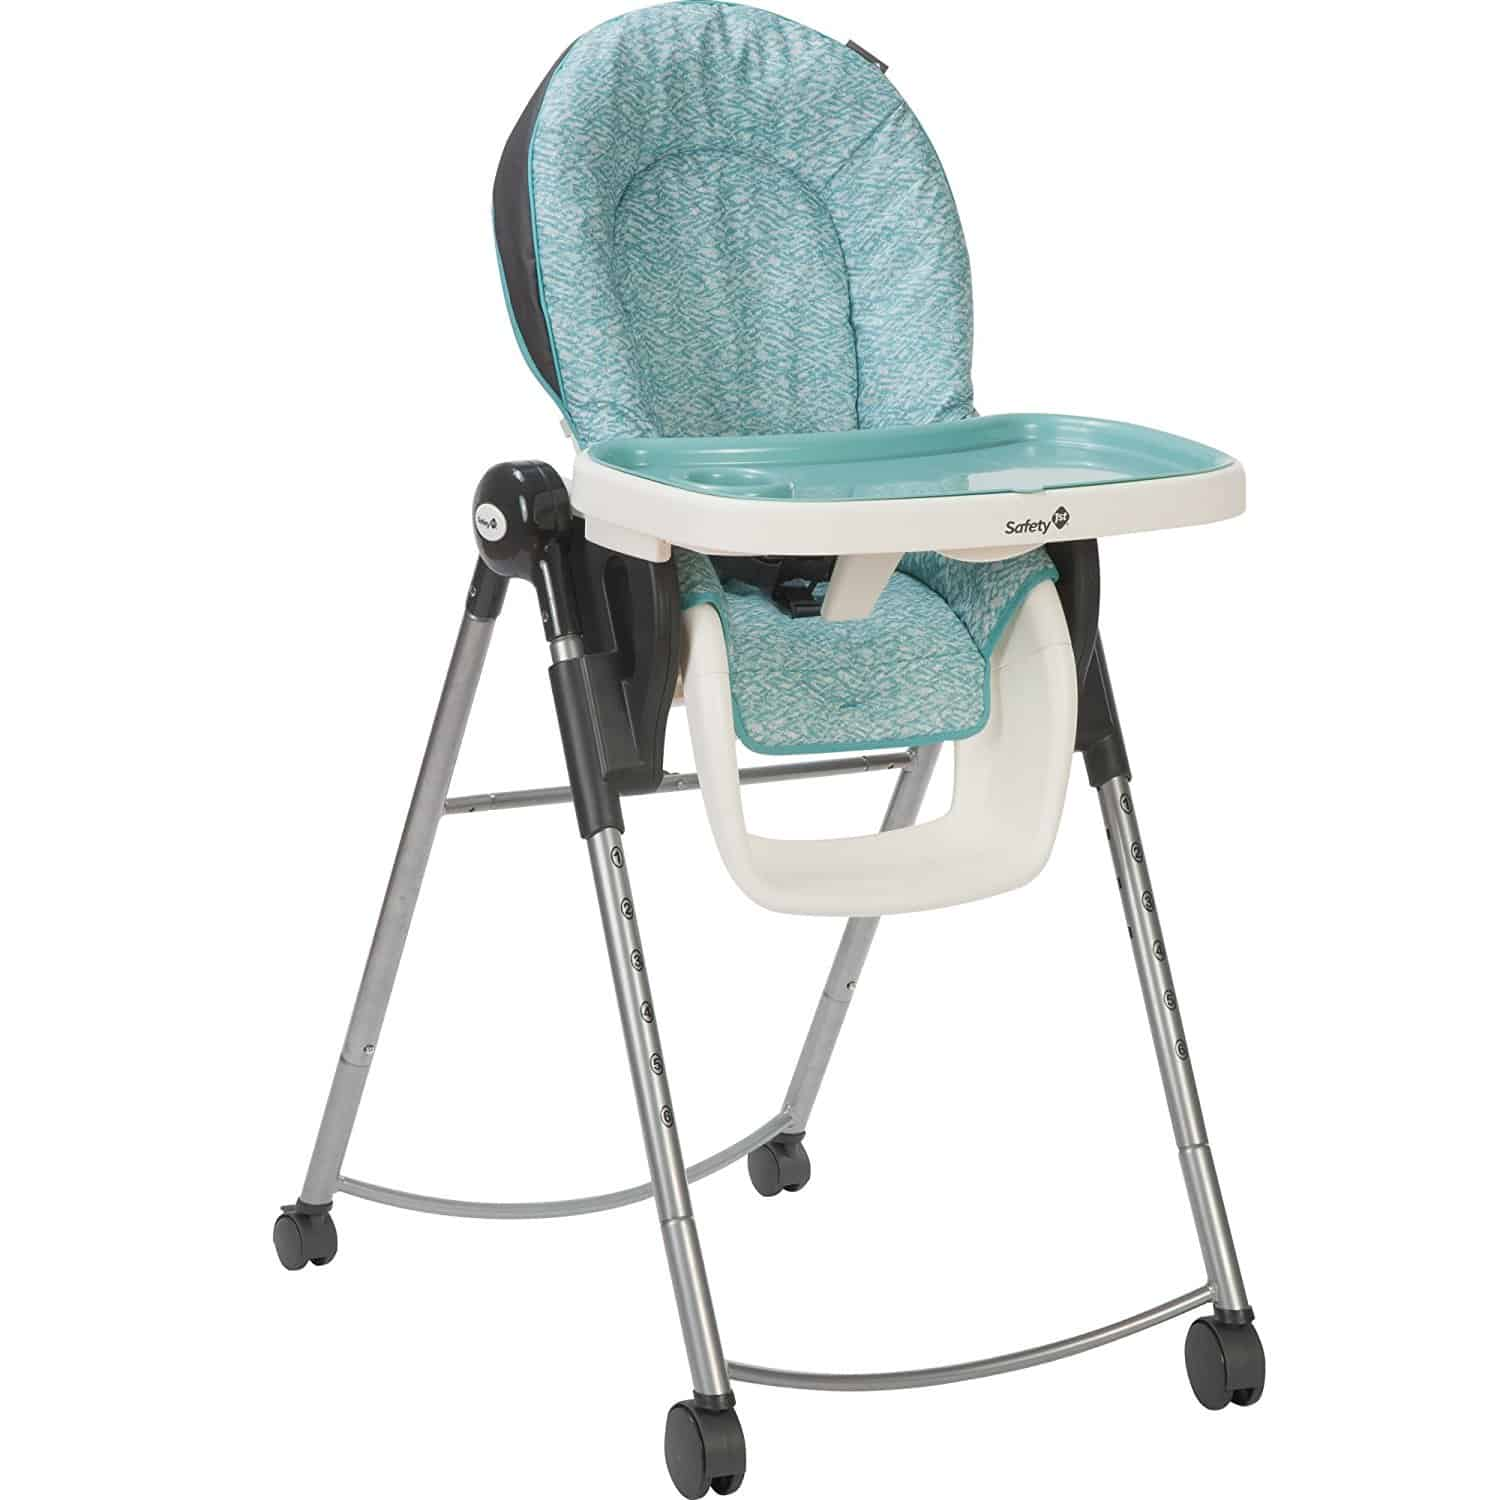 high chair recall blue patterned dining chairs brand review safety 1st baby